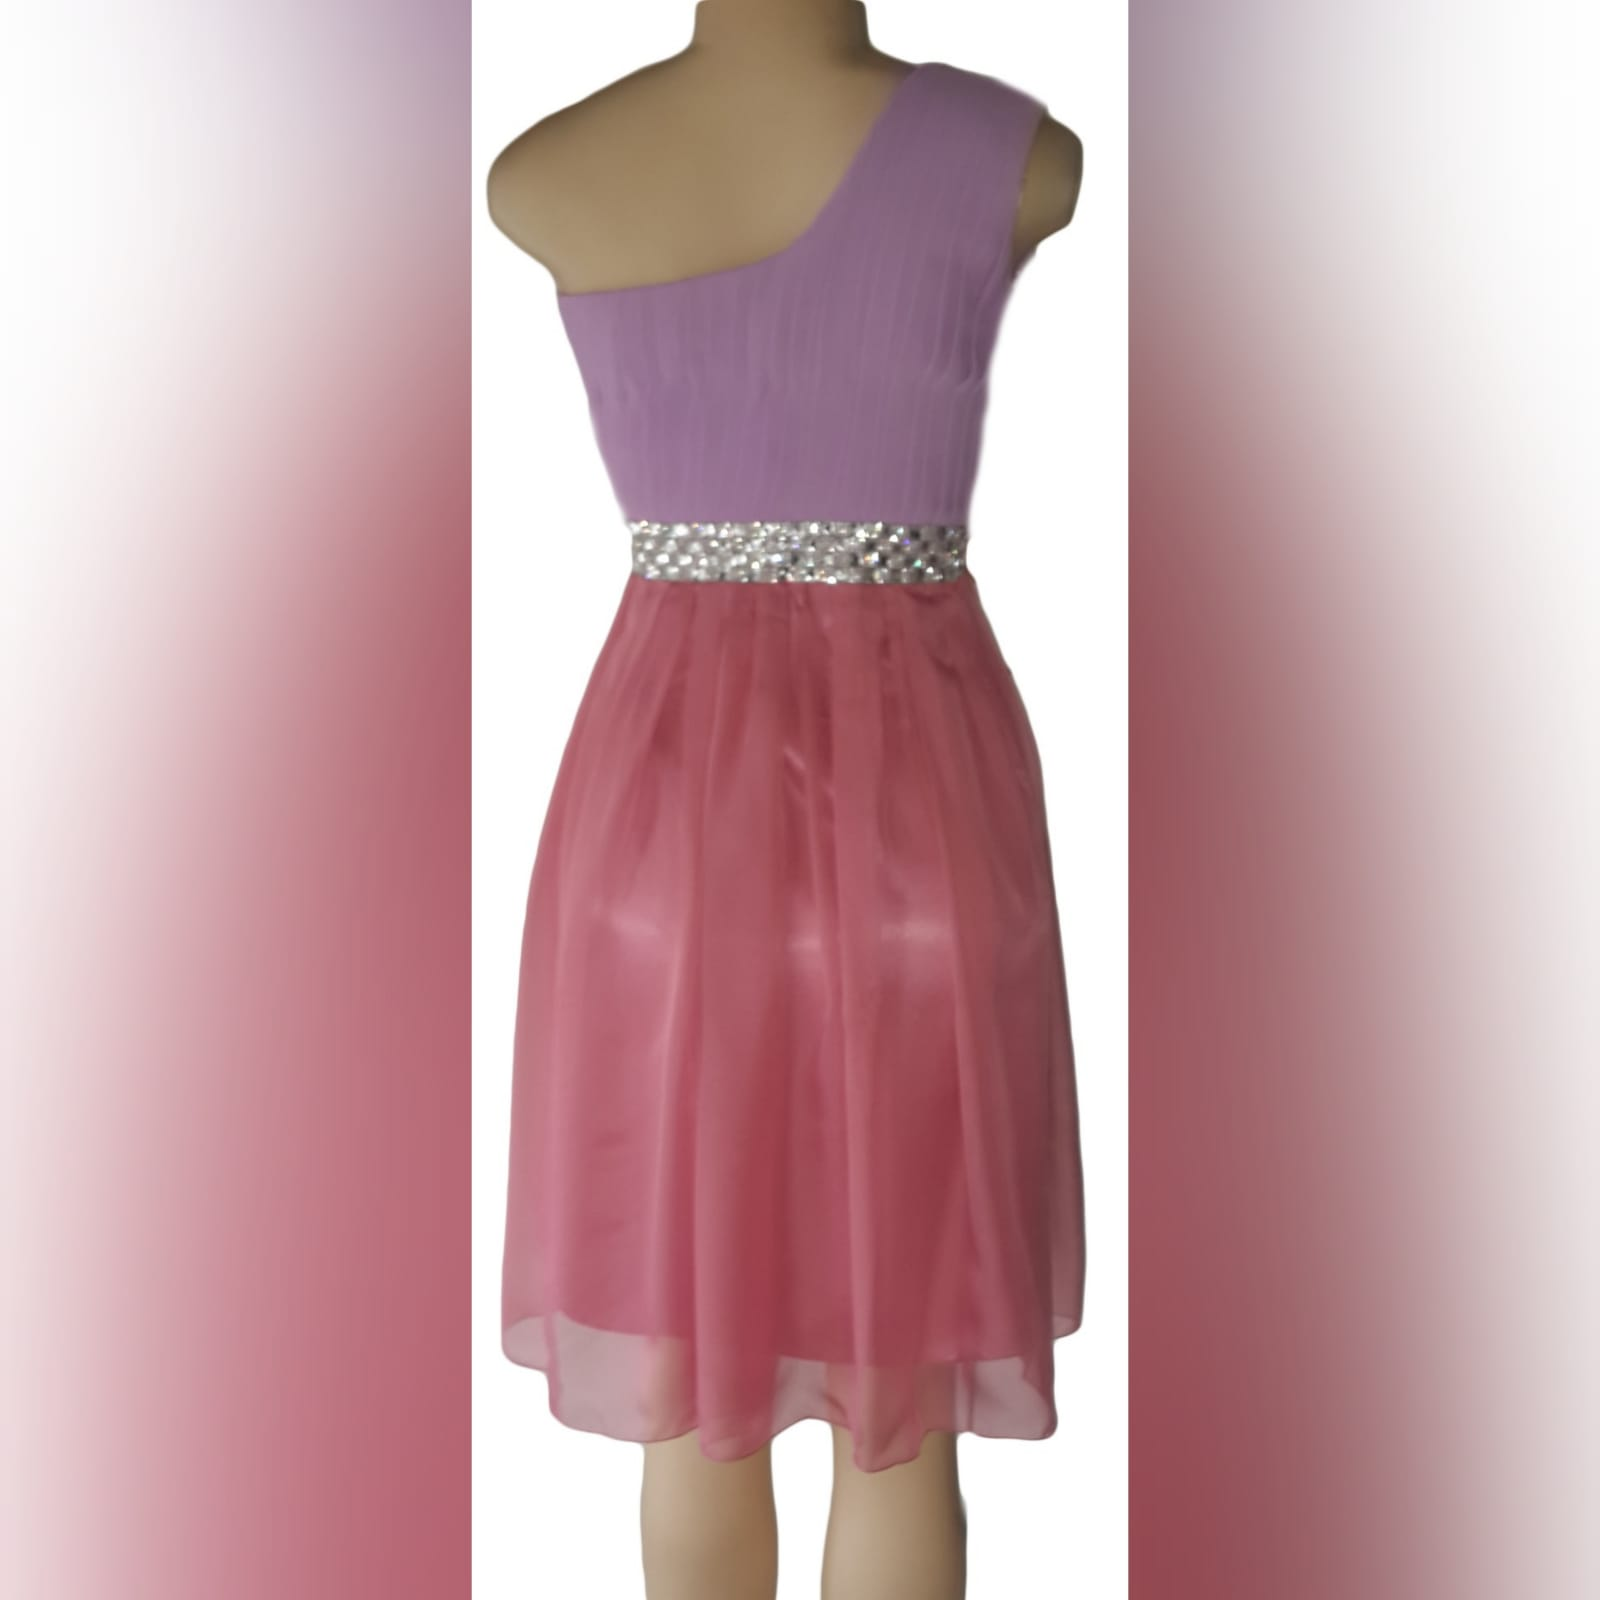 Lilac & dusty pink pink chiffon bridesmaid dress 4 lilac & dusty pink pink chiffon bridesmaid dress with a single shoulder sweetheart neckline. Pleated bodice with a silver belt bling detail.